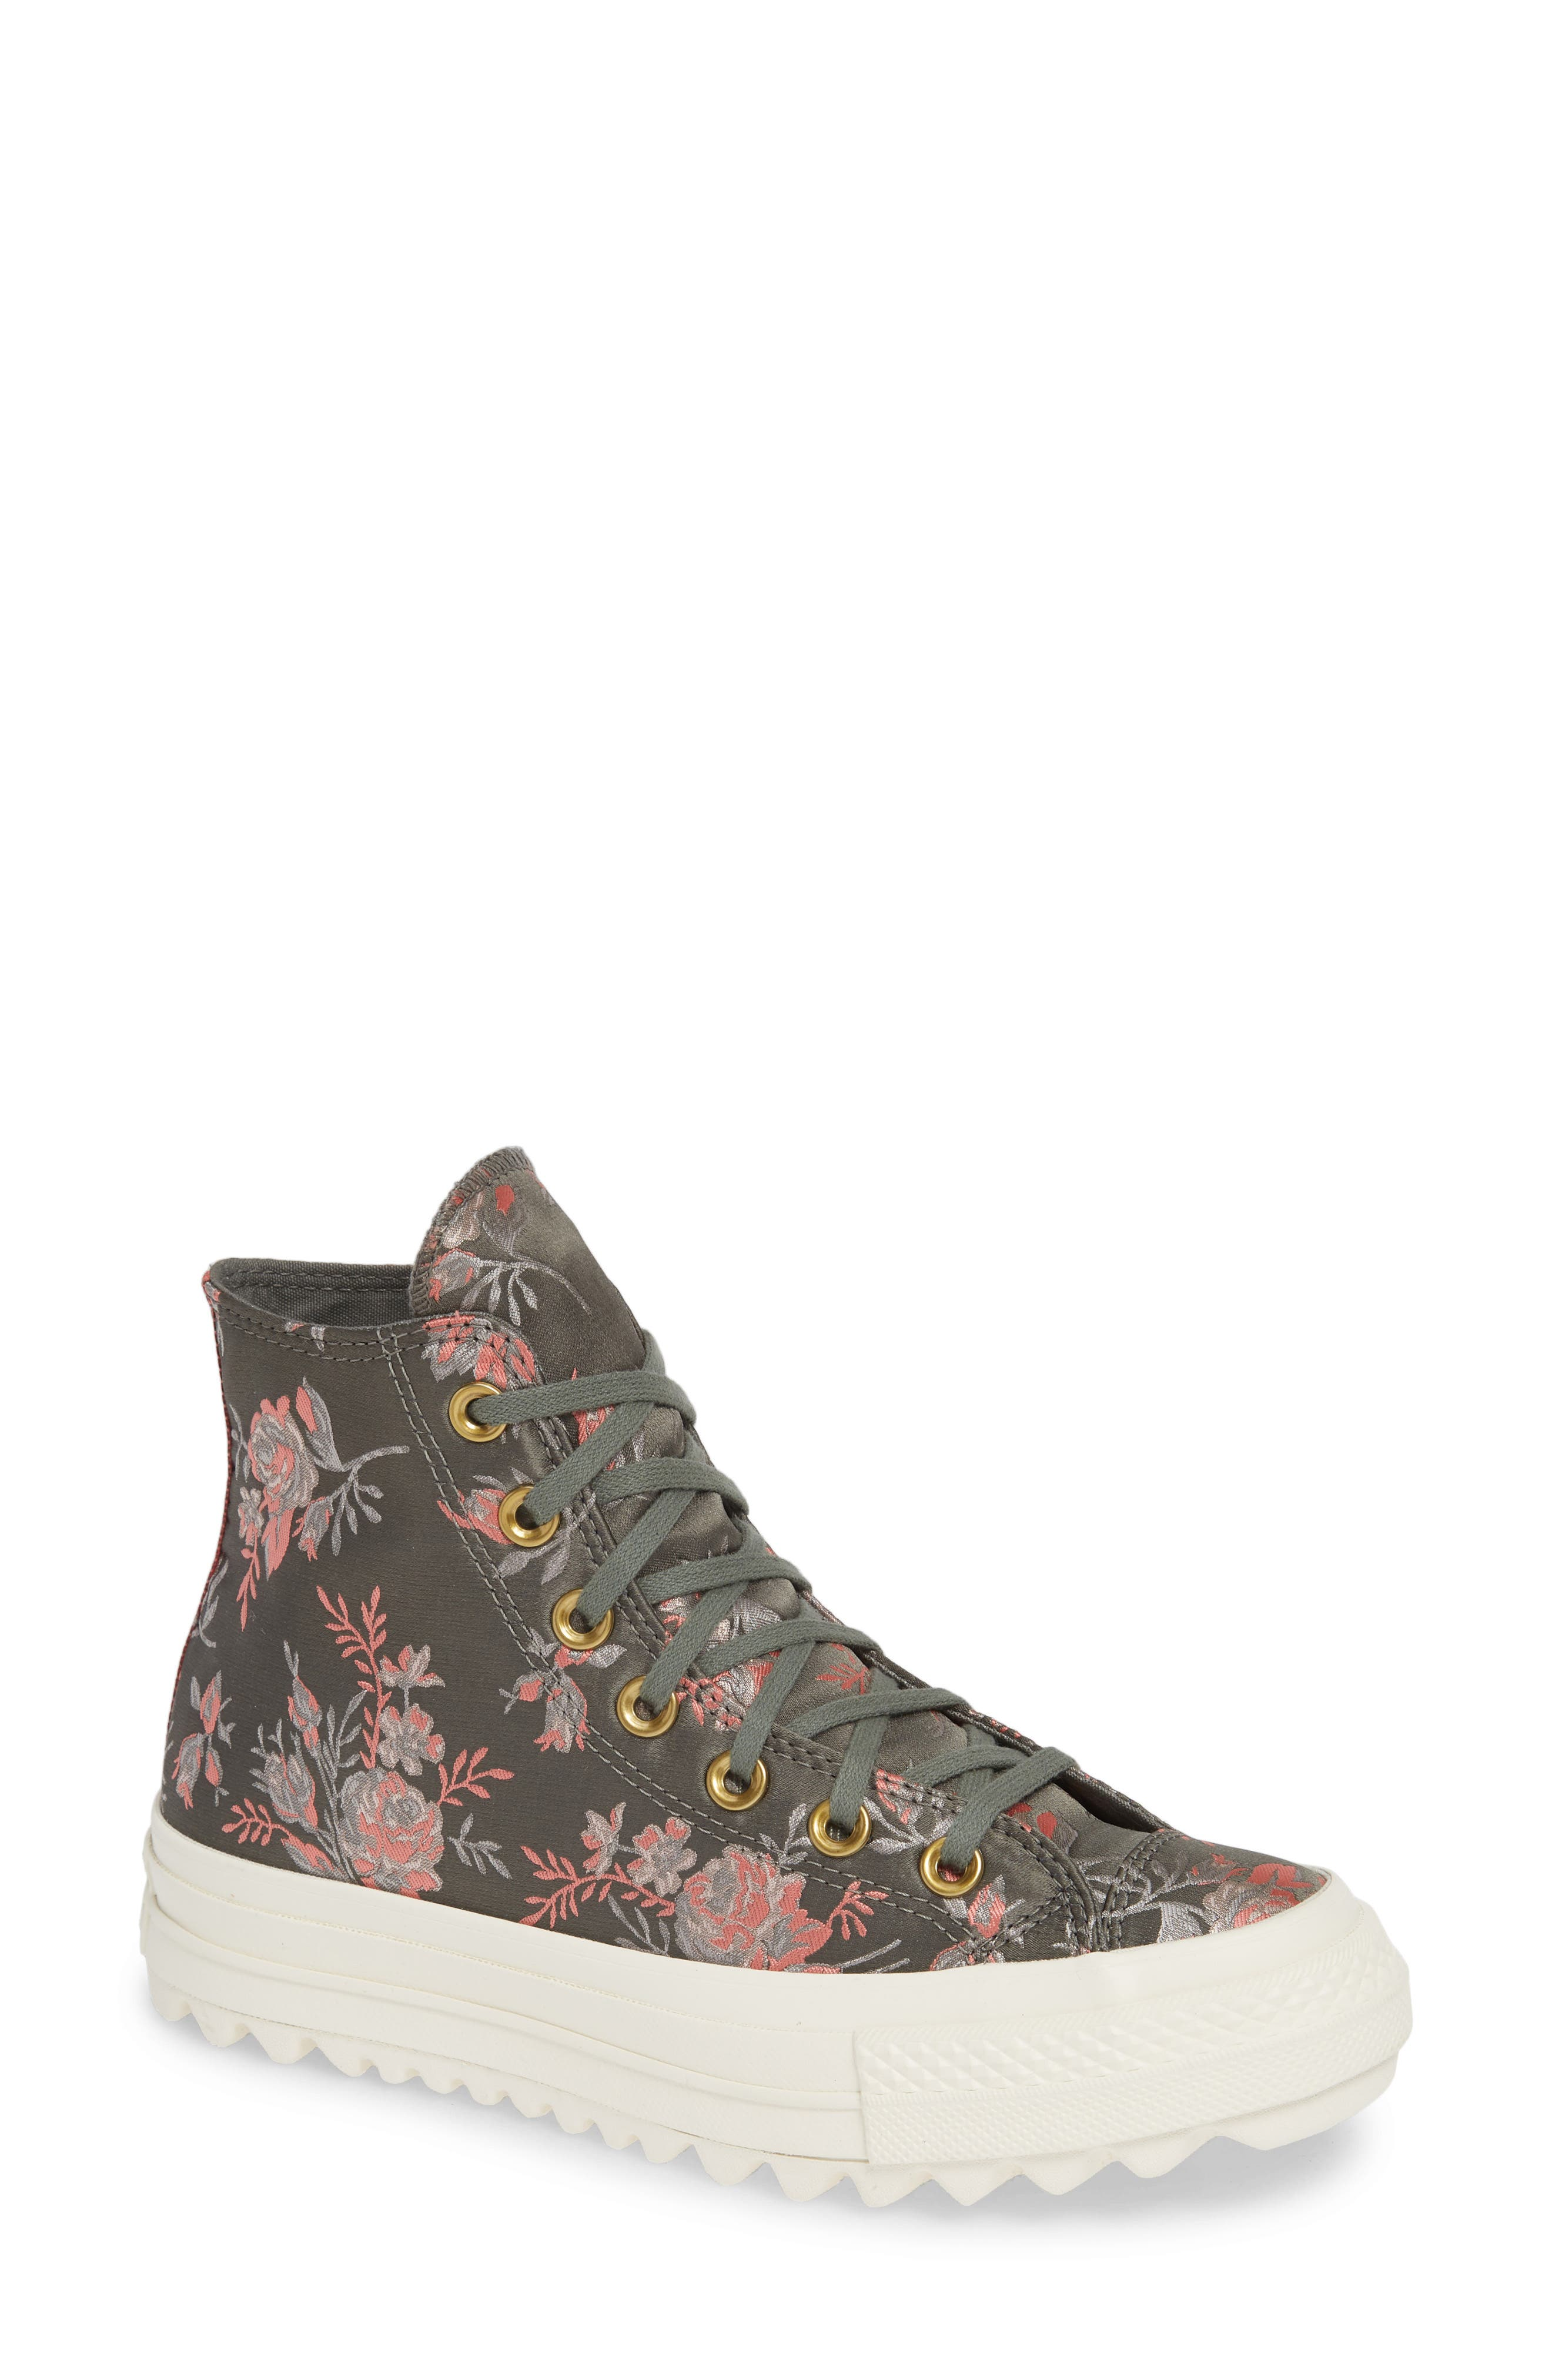 Lift Ripple Parkway Floral High Top